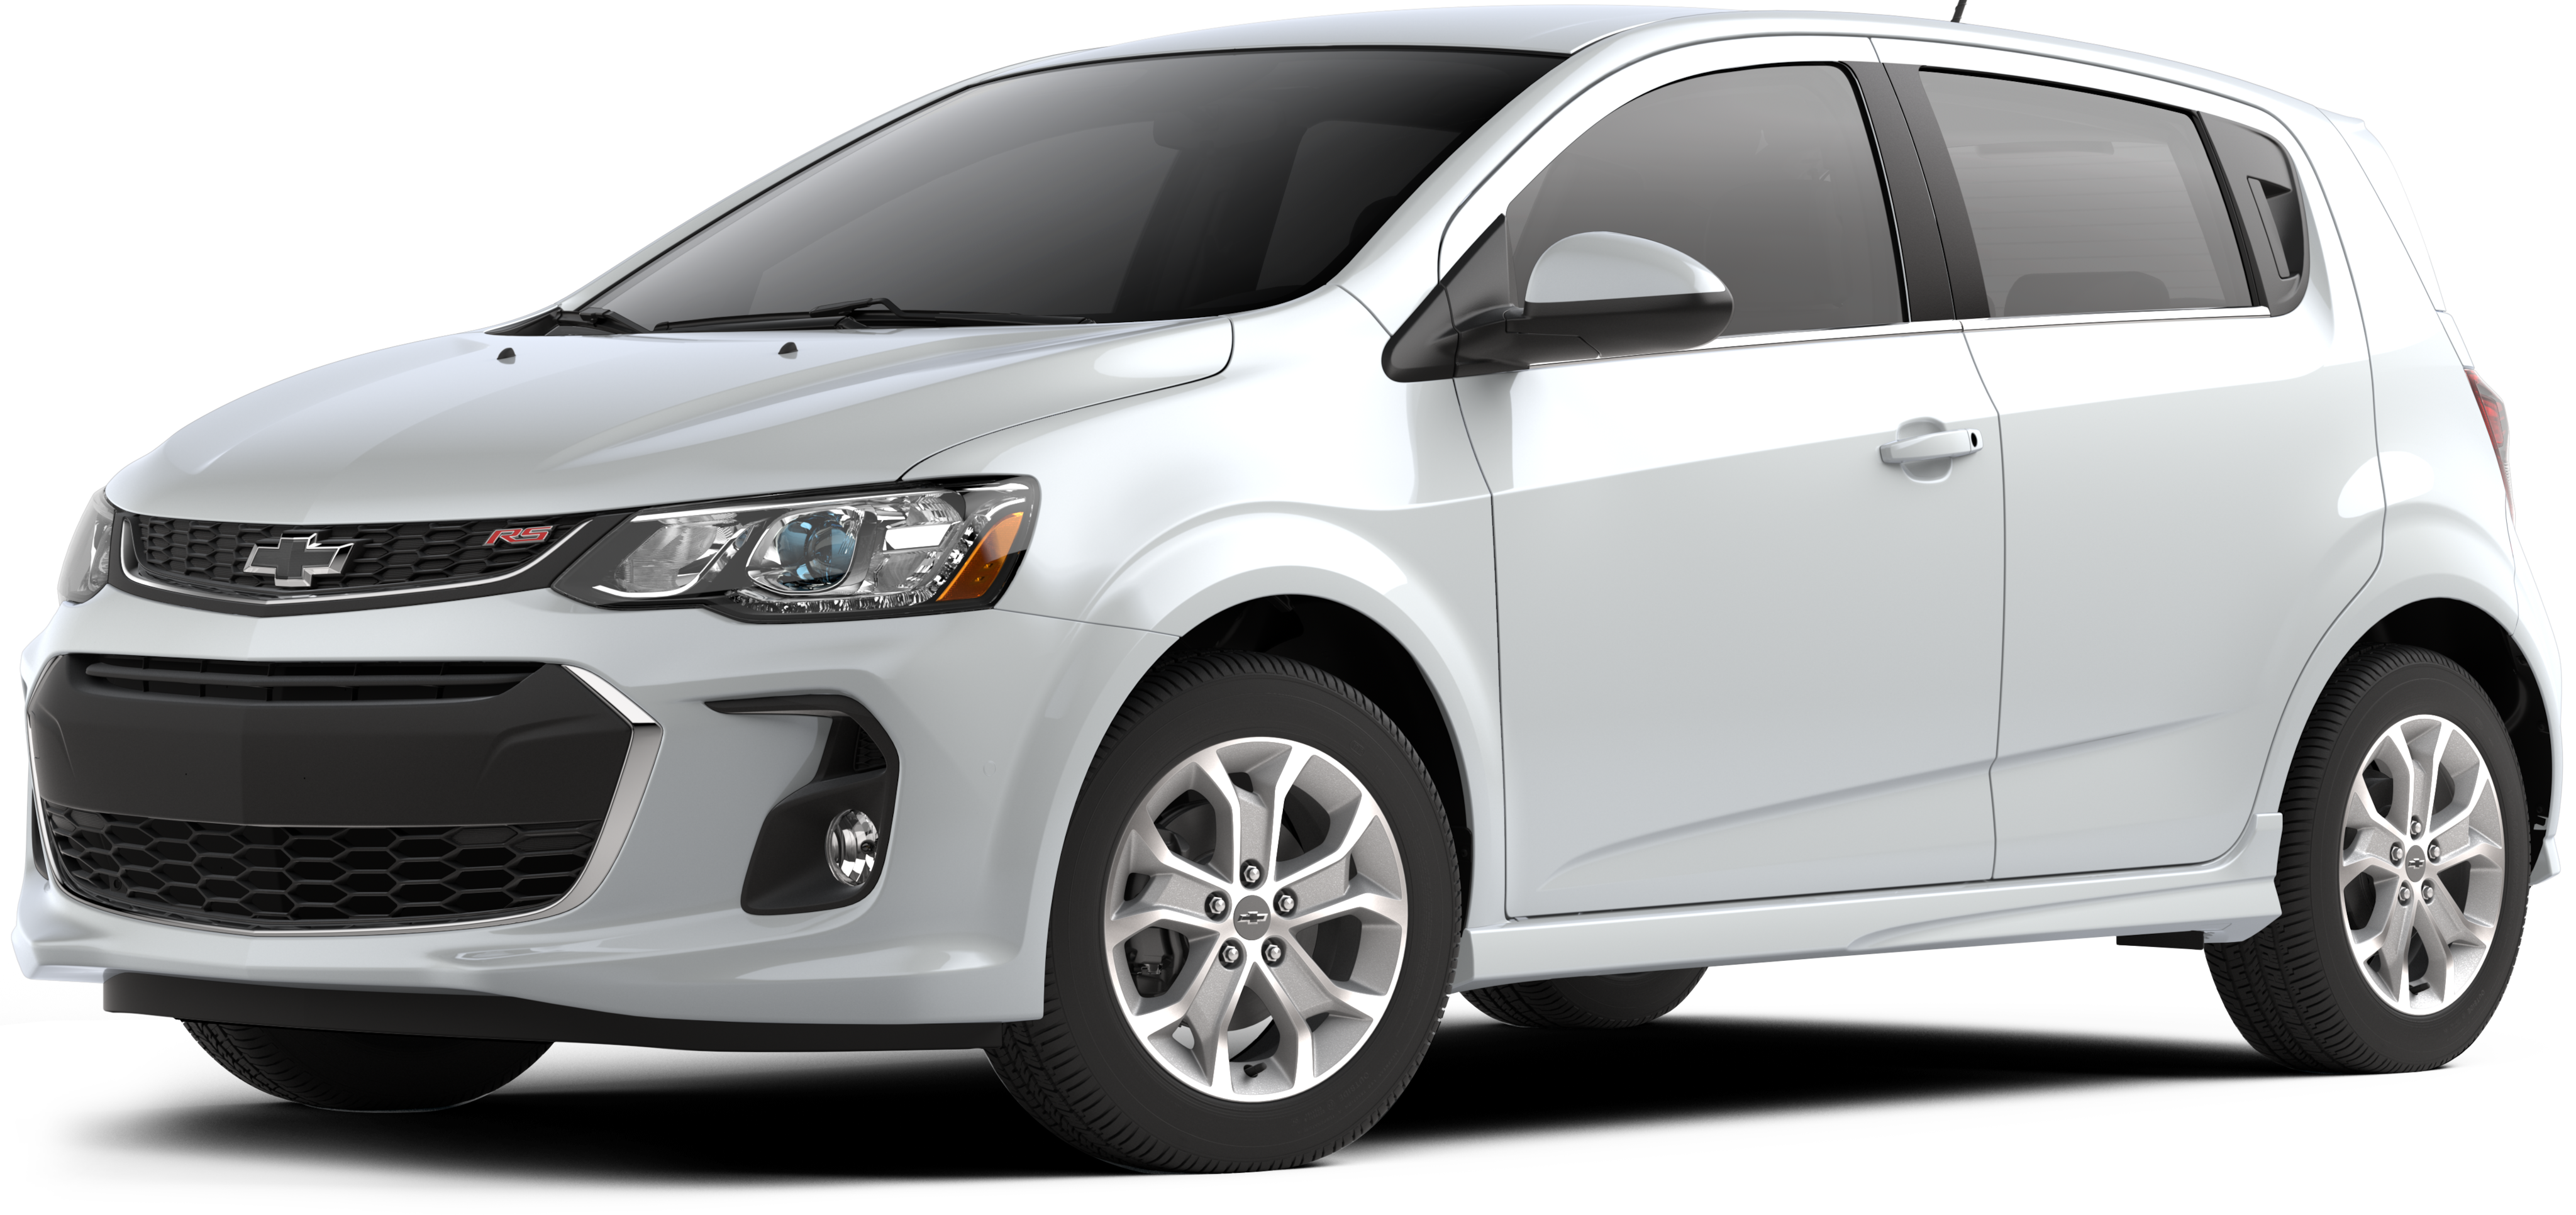 2020 Chevy Sonic Price and Release date